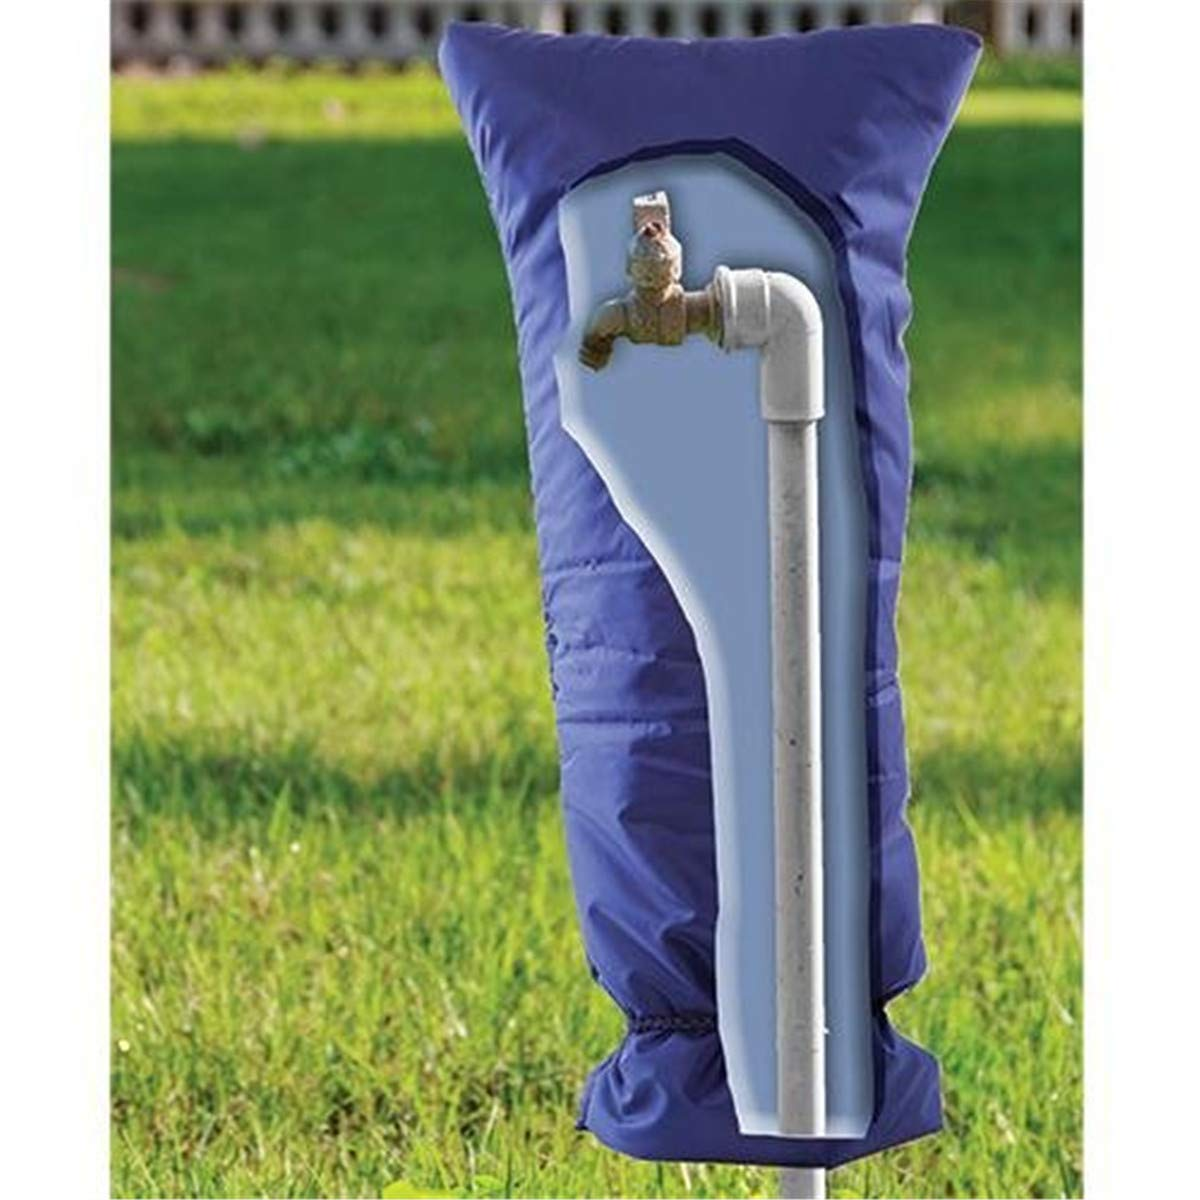 Outdoor Faucet Protector Gentlecarin Faucet Cover Outside Tap Cover//Spigot Cover//Faucet Protector,7.87x20 inch Faucet Socks for Winter Freeze Protection